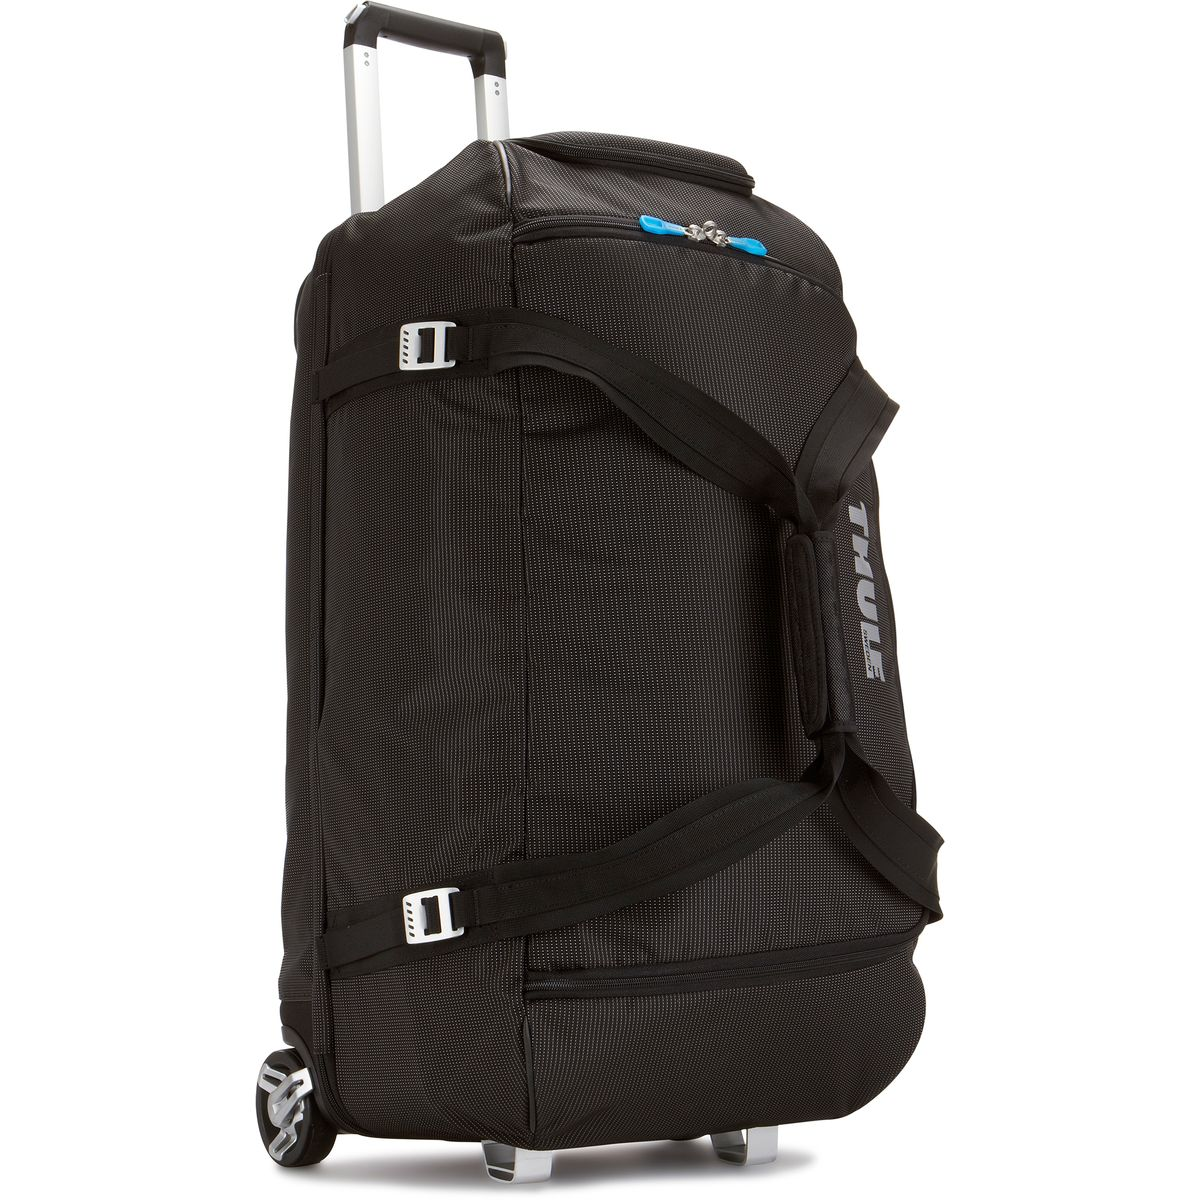 Crossover 87L Rolling Duffel travel bag